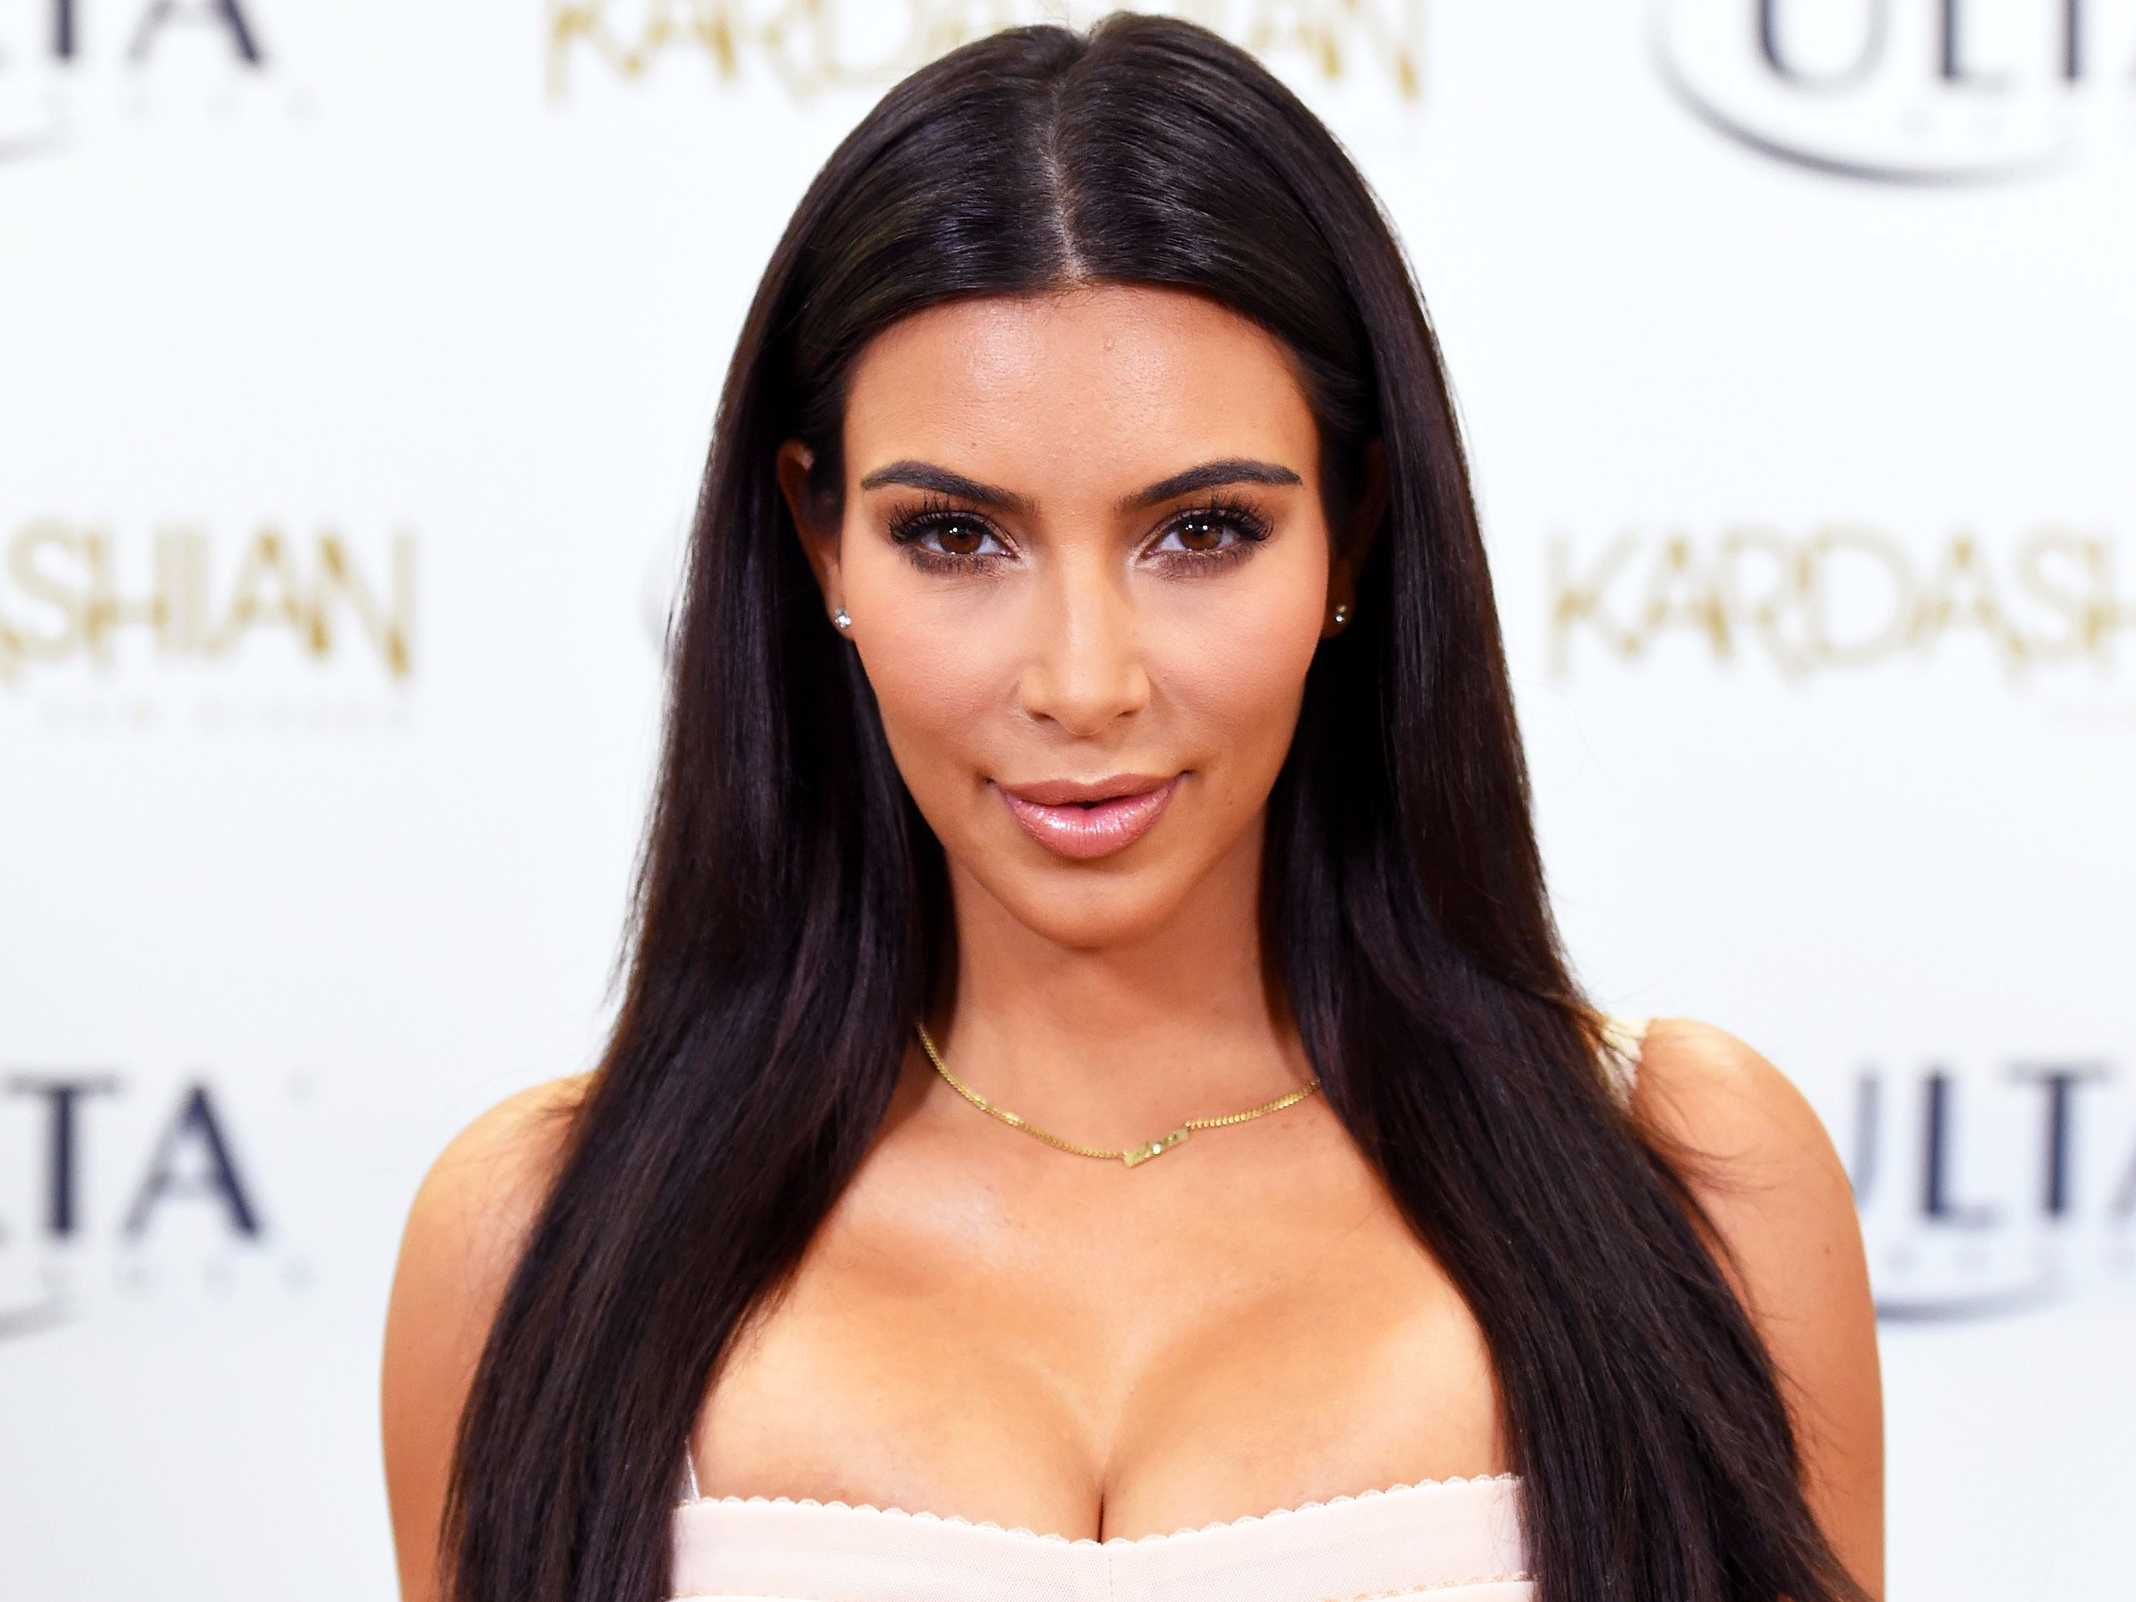 a literary analysis of christine hausers argument on the post of kim kardashian on social media Argument bibliography kim kardashian's adult film with singer r jay ,current not only do social media sites allow these women to get the word out.